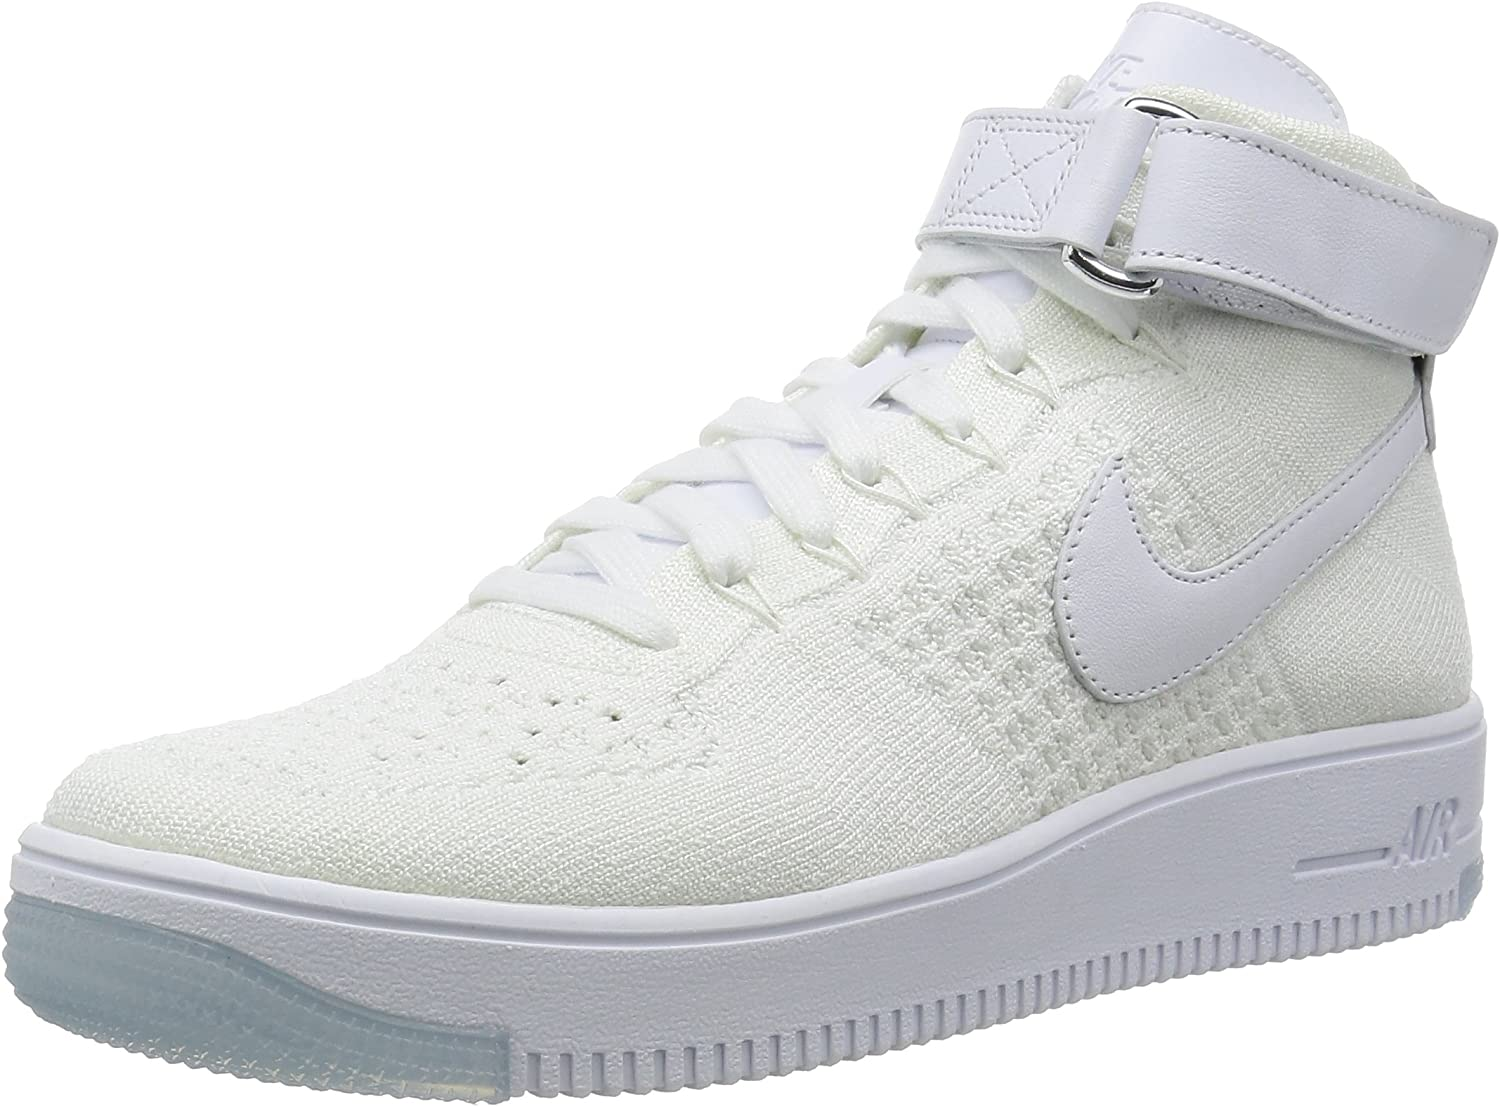 100% genuine arriving another chance Amazon.com | NIKE AF1 Ultra Flyknit Mid Mens Trainers 817420 ...